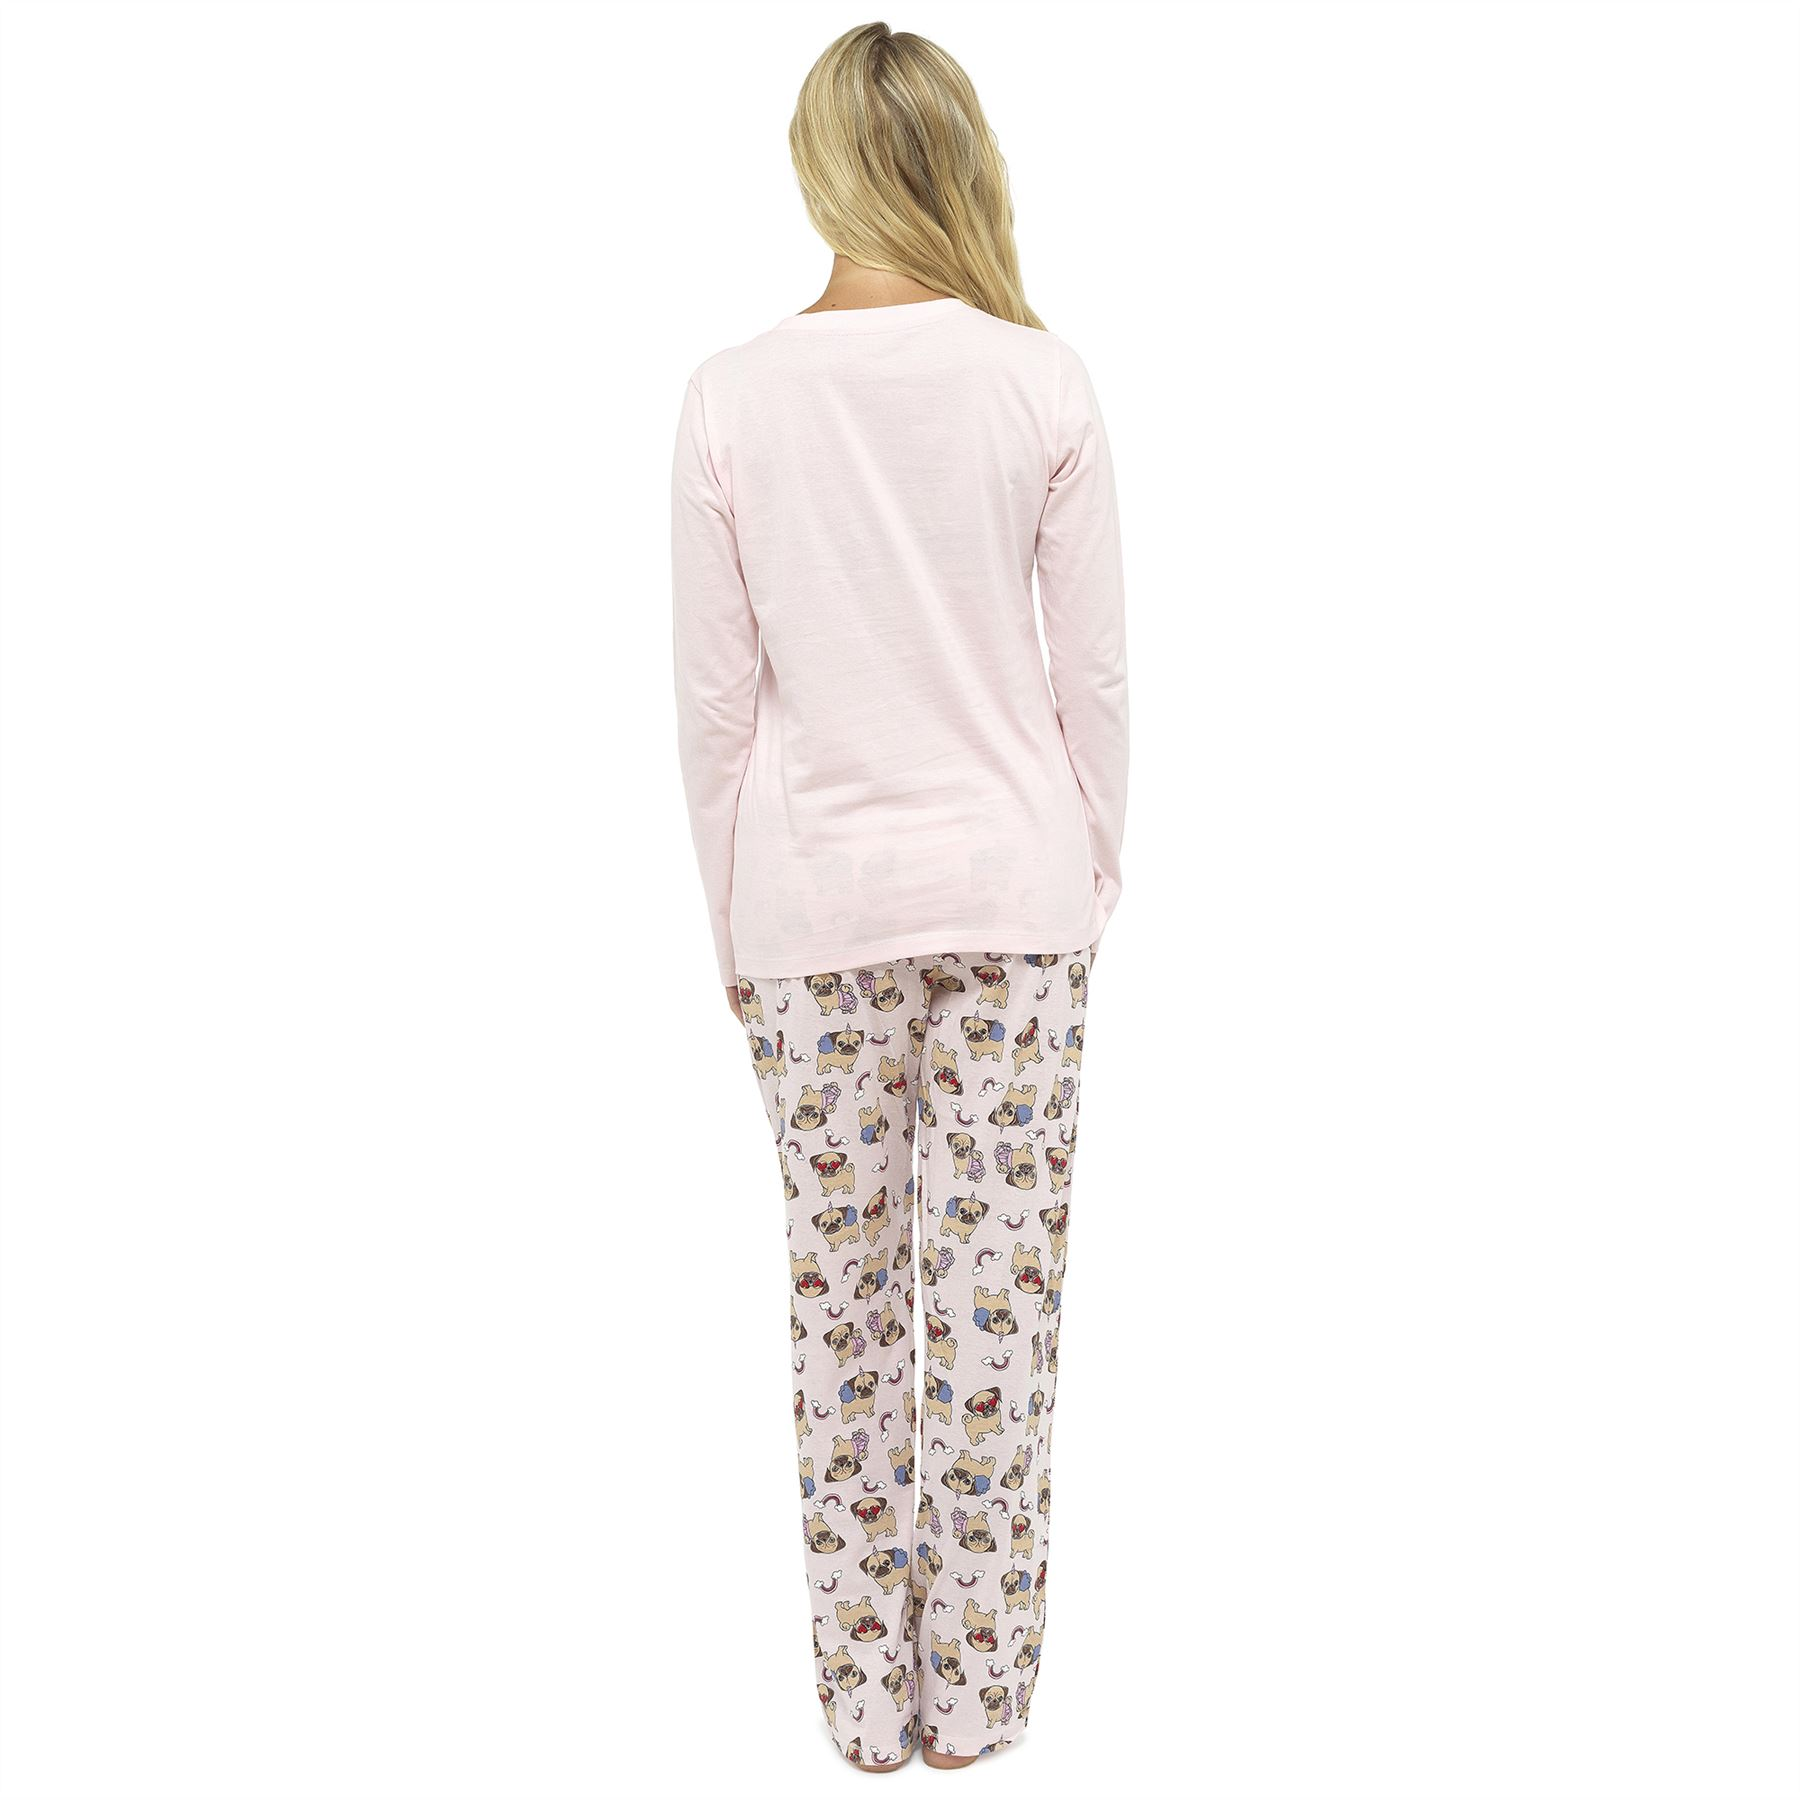 Womens-Ladies-Pug-Dog-Unicorn-Cotton-Pyjamas-Pyjama-PJ-Set-Size-8-22